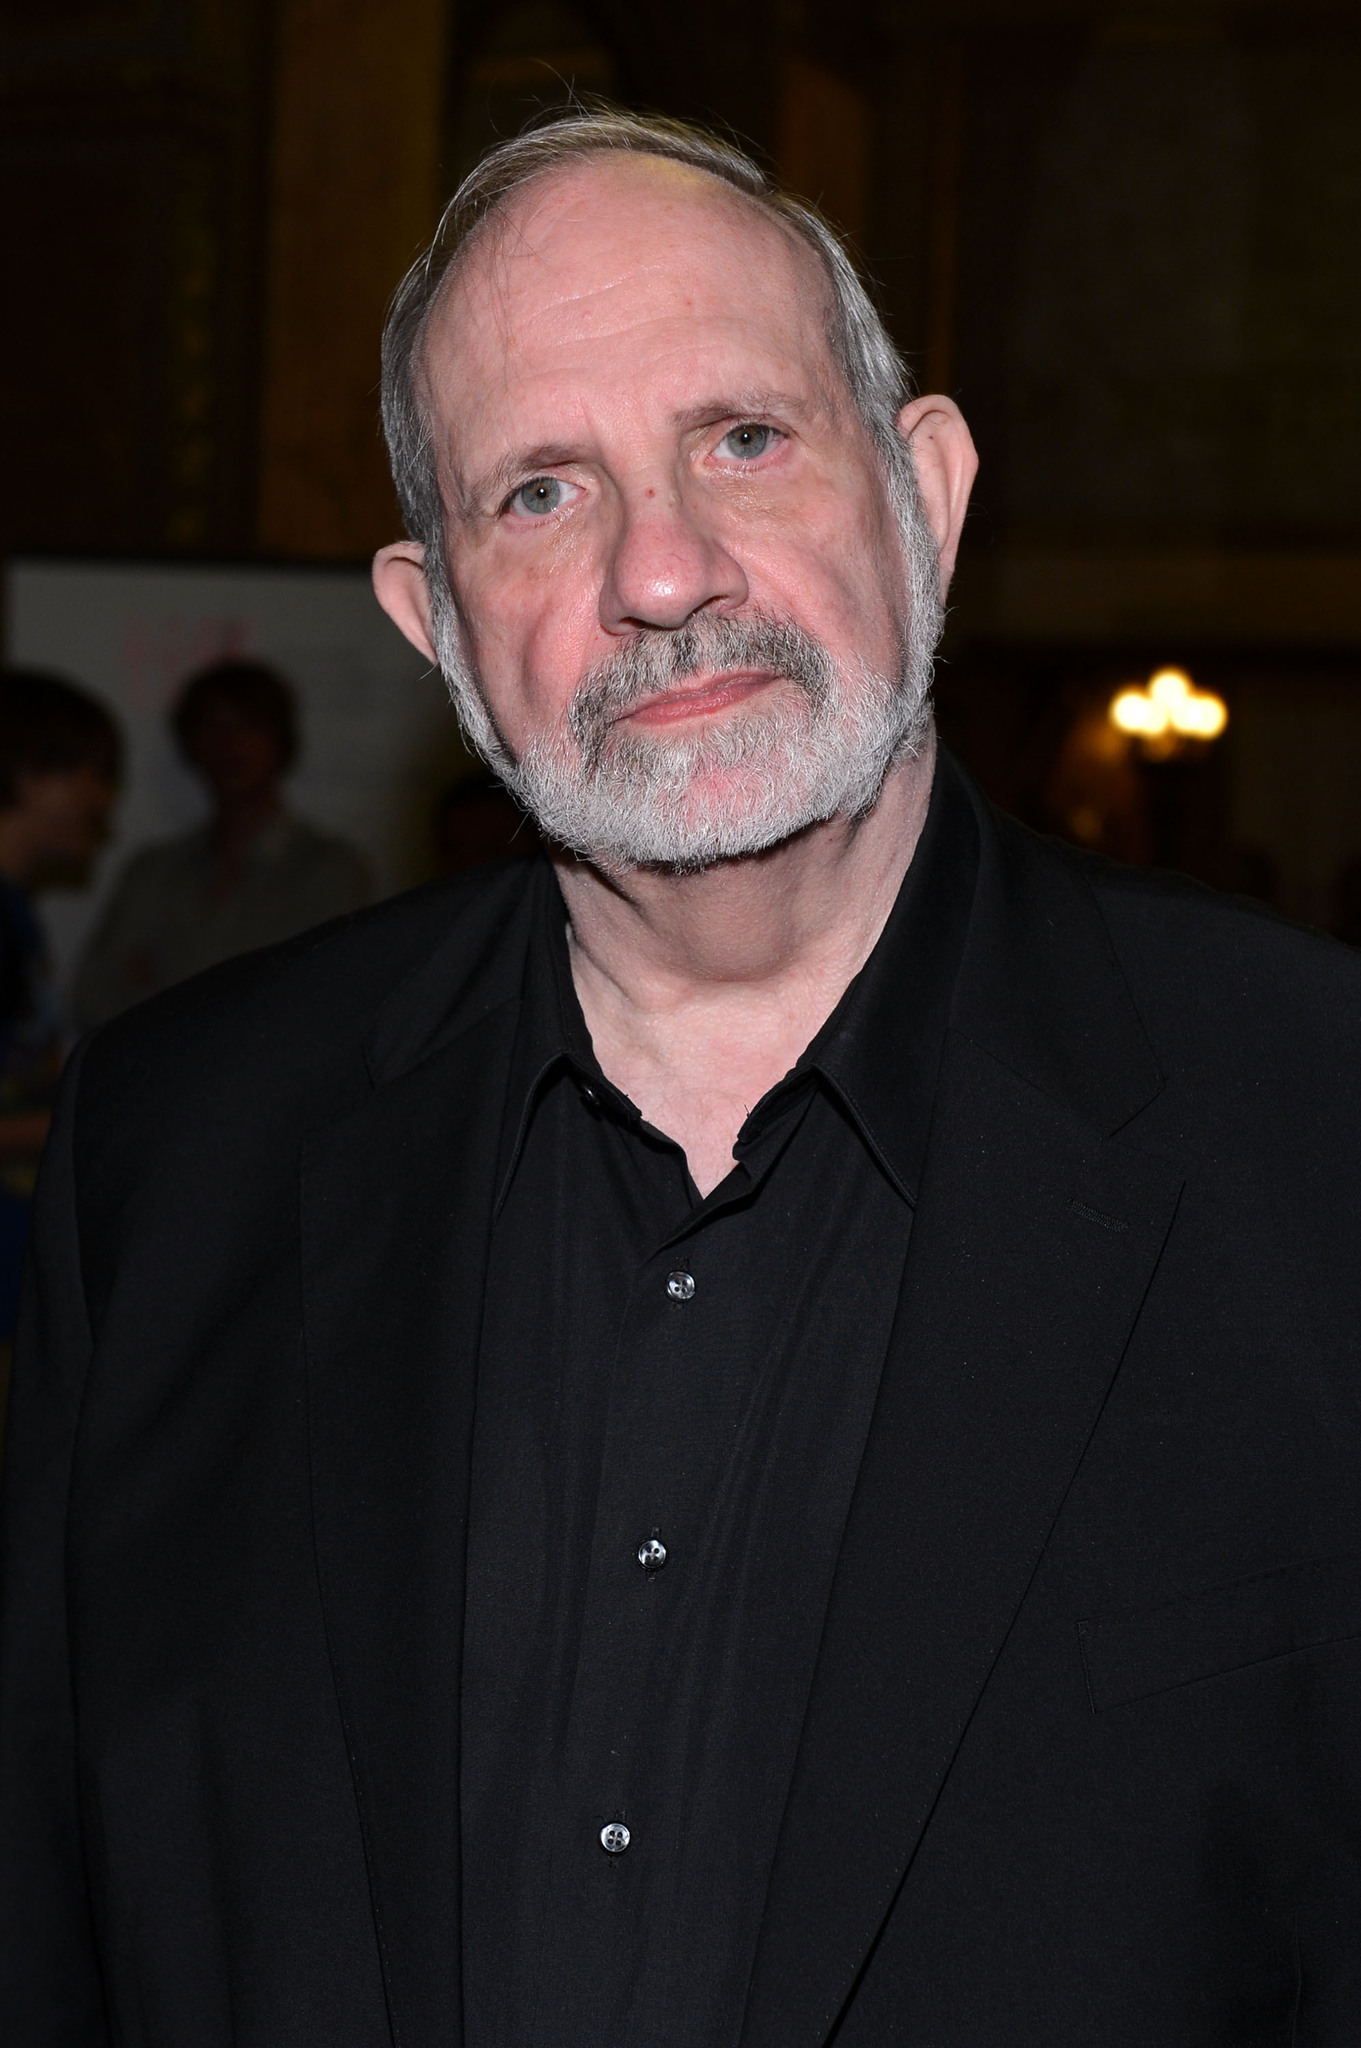 Brian De Palma at an event for Passion (2012)